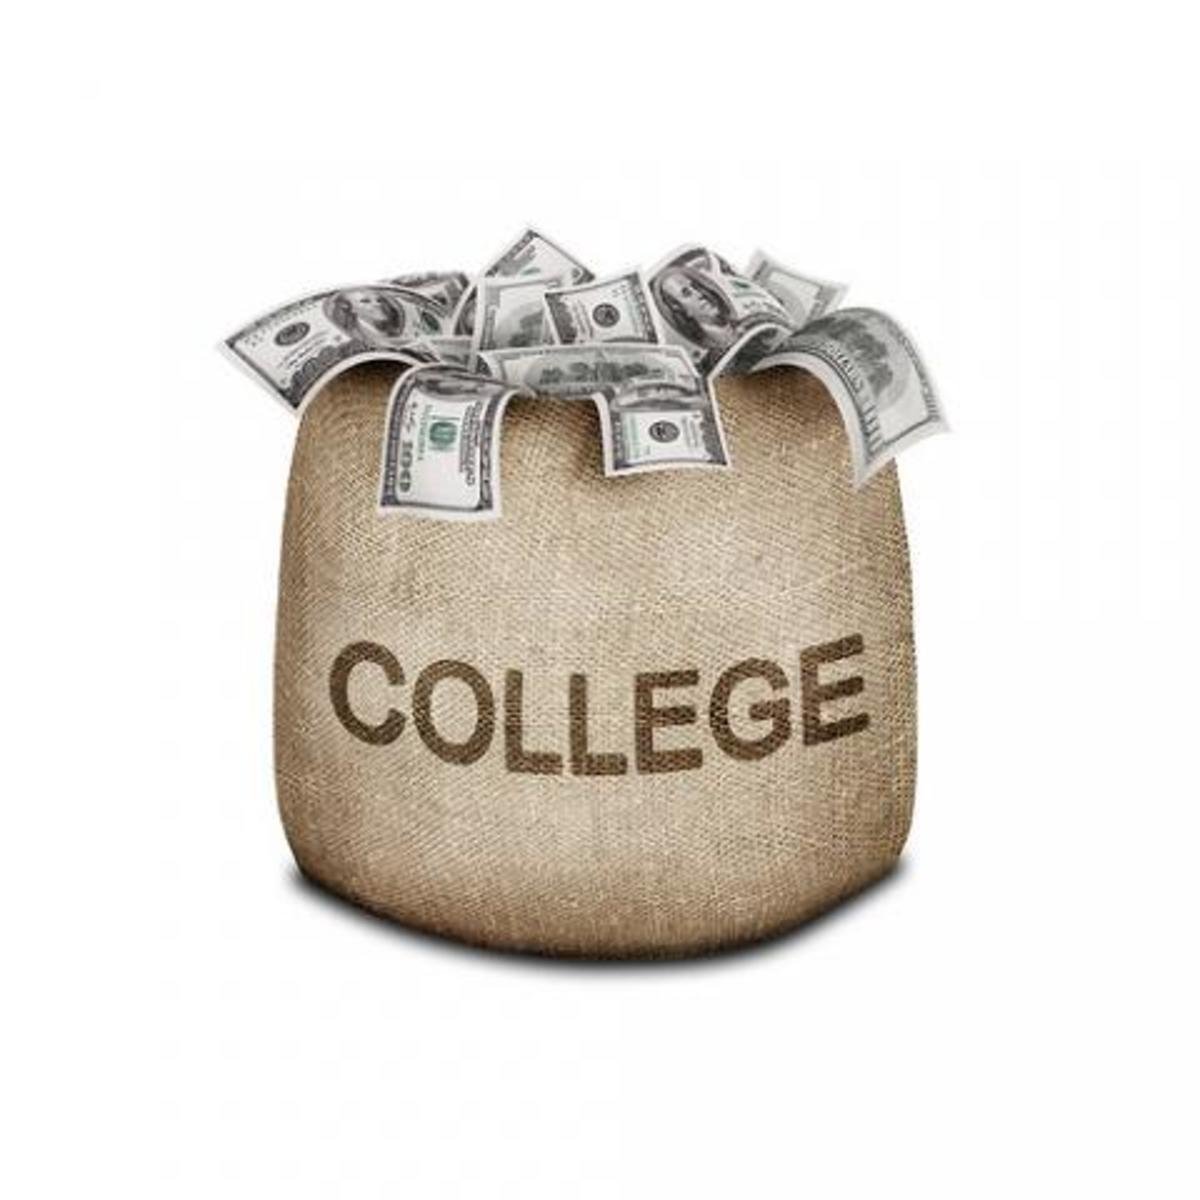 3 Easy Ways to Save Money at College